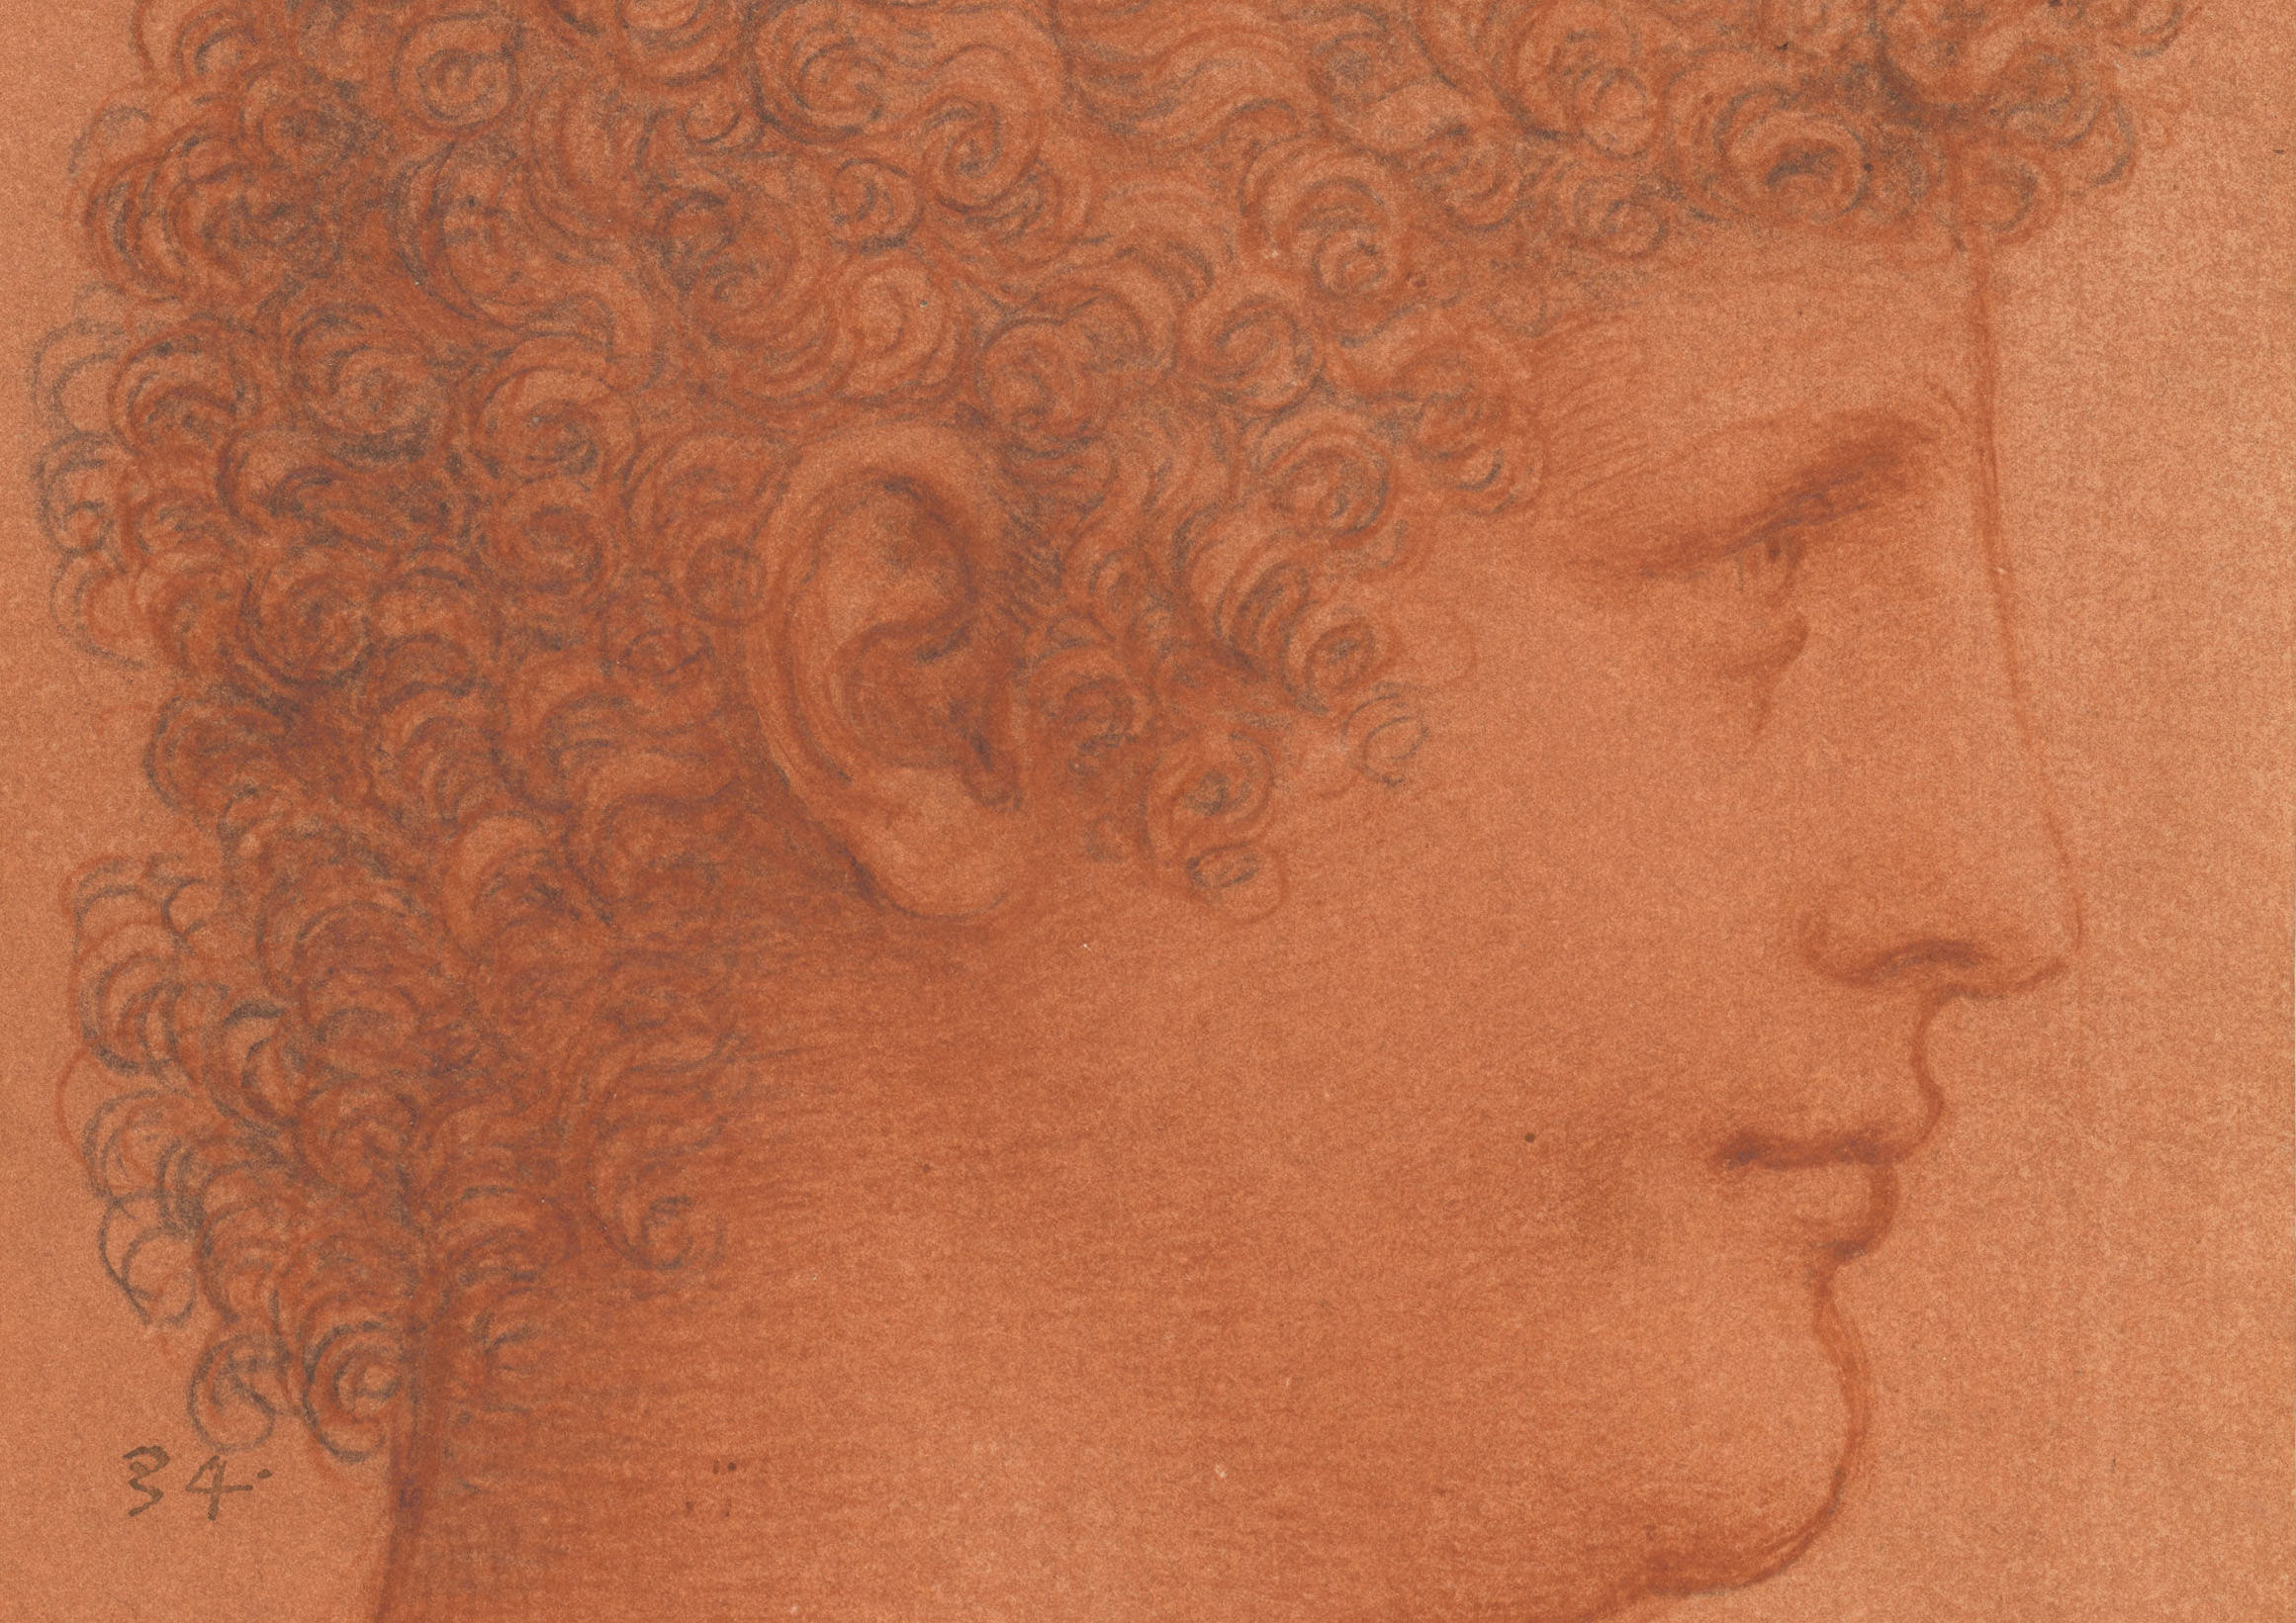 The head of a youth, c.1510, one of almost 150 drawings by Leonardo da Vinci will go on display (Royal Collection Trust/PA Wire)